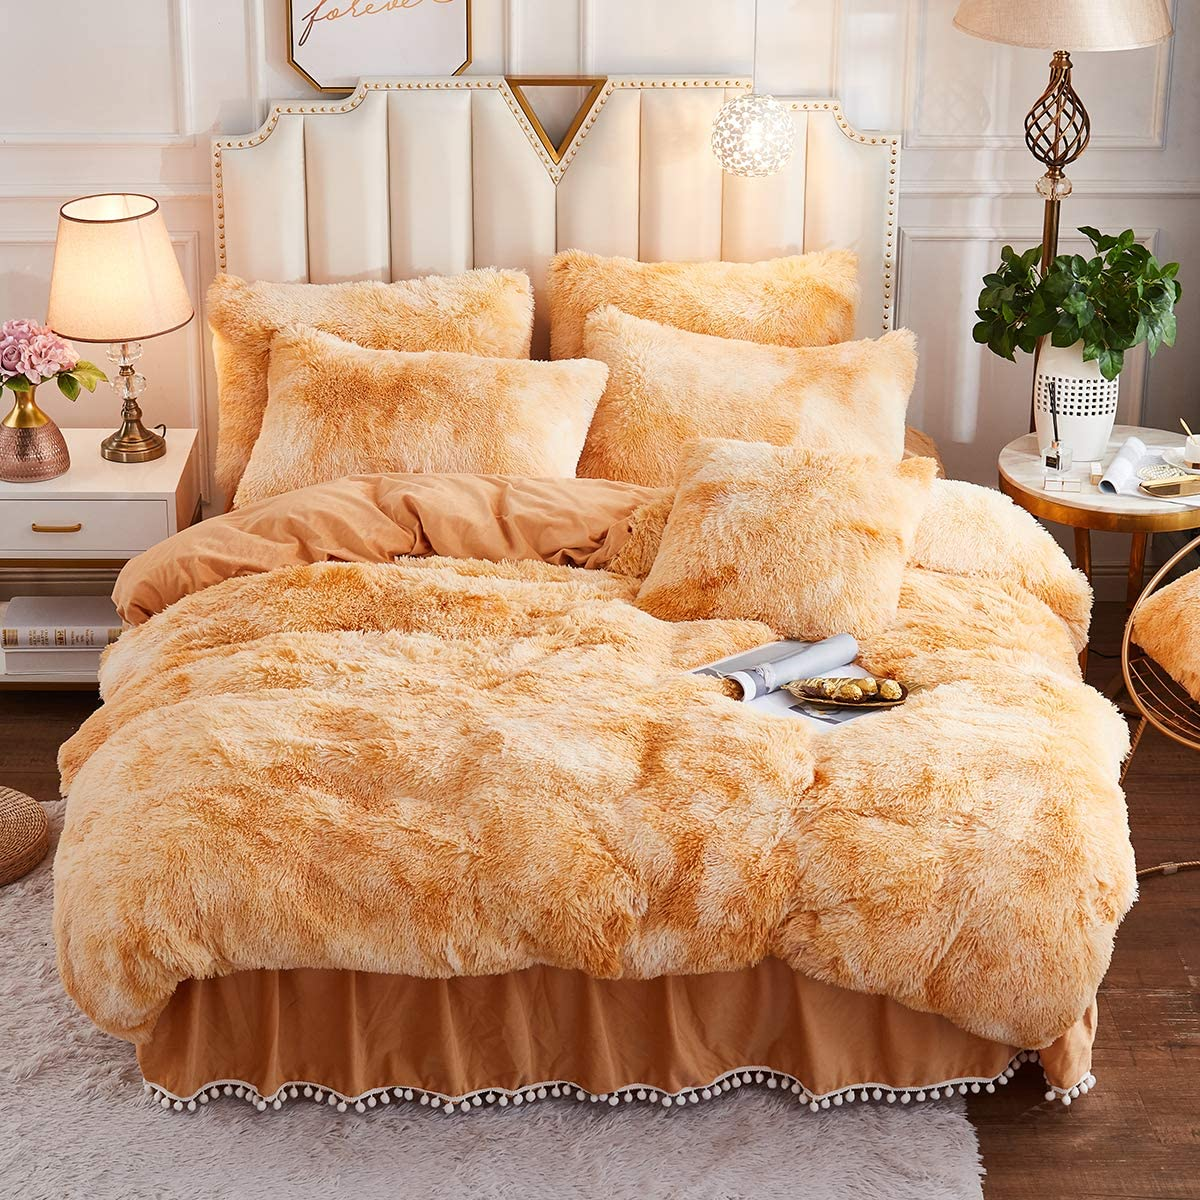 JAUXIO Luxury Abstract Faux Fur Bedding Set Tie Dye Printed Shaggy Duvet Cover with Pillow Shams Soft Crystal Velvet Reverse (ueen, Sandy Brown